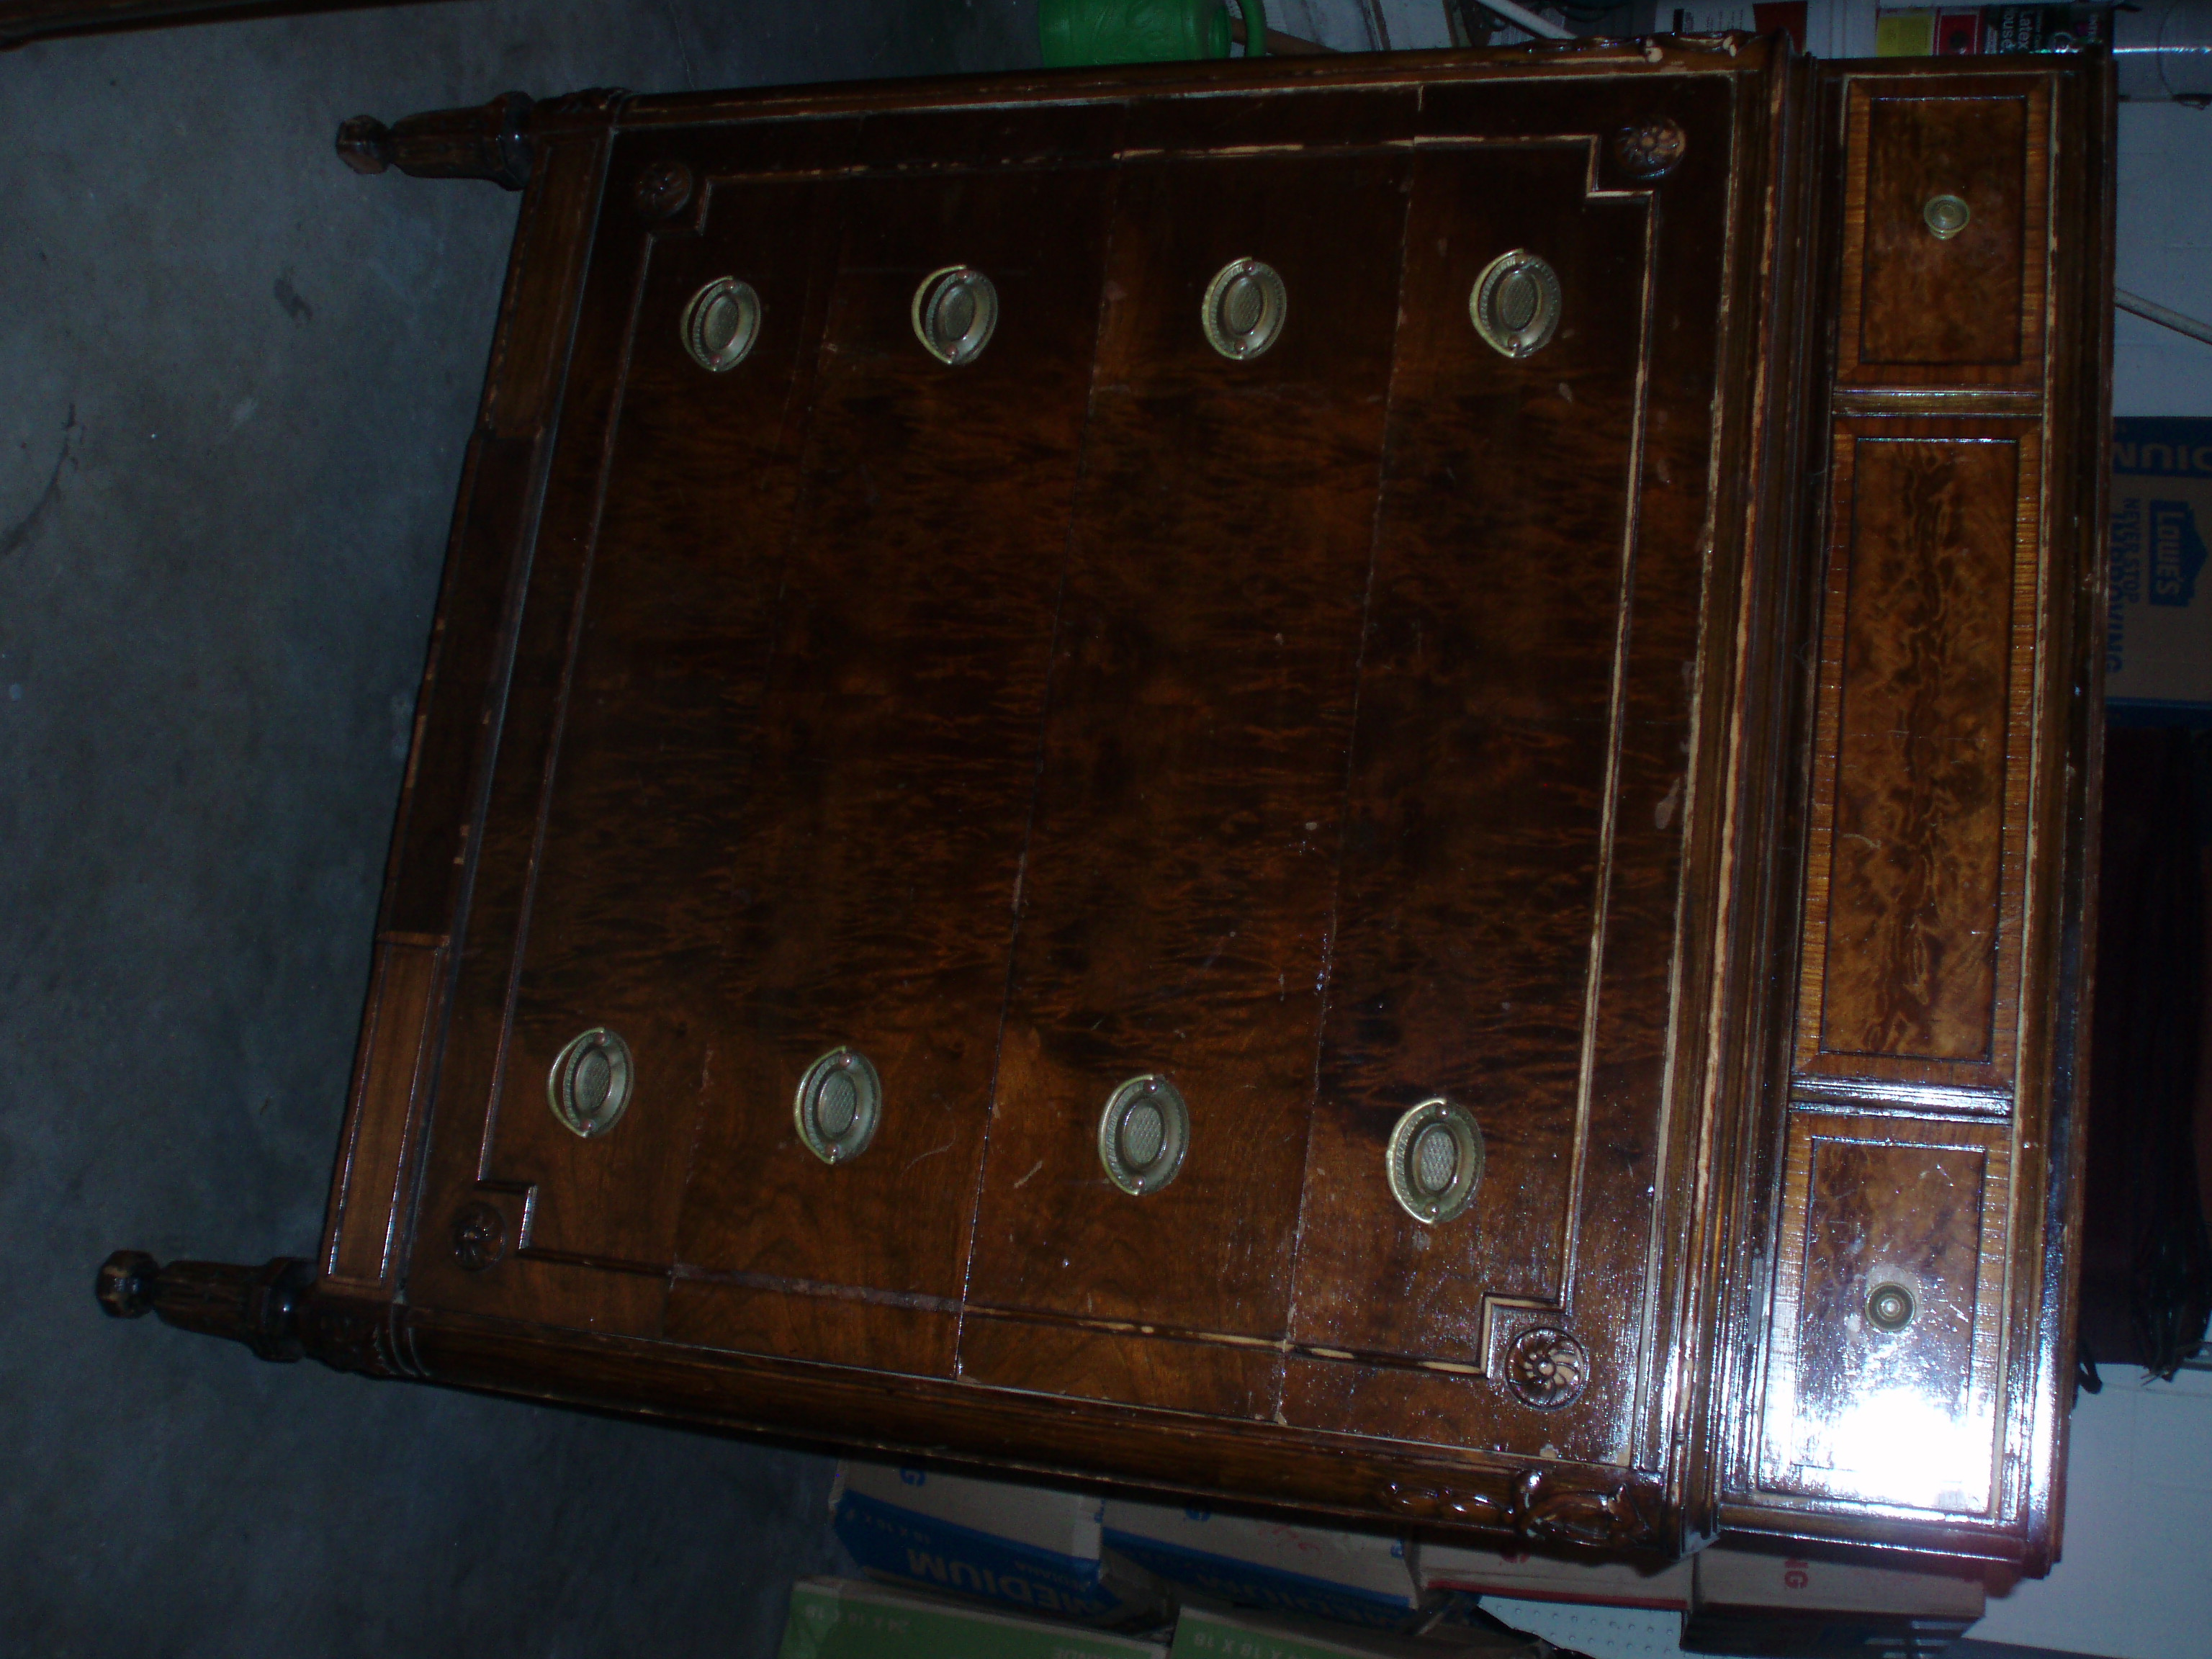 I Have What I Think Is An Antique Bedroom Dresser With